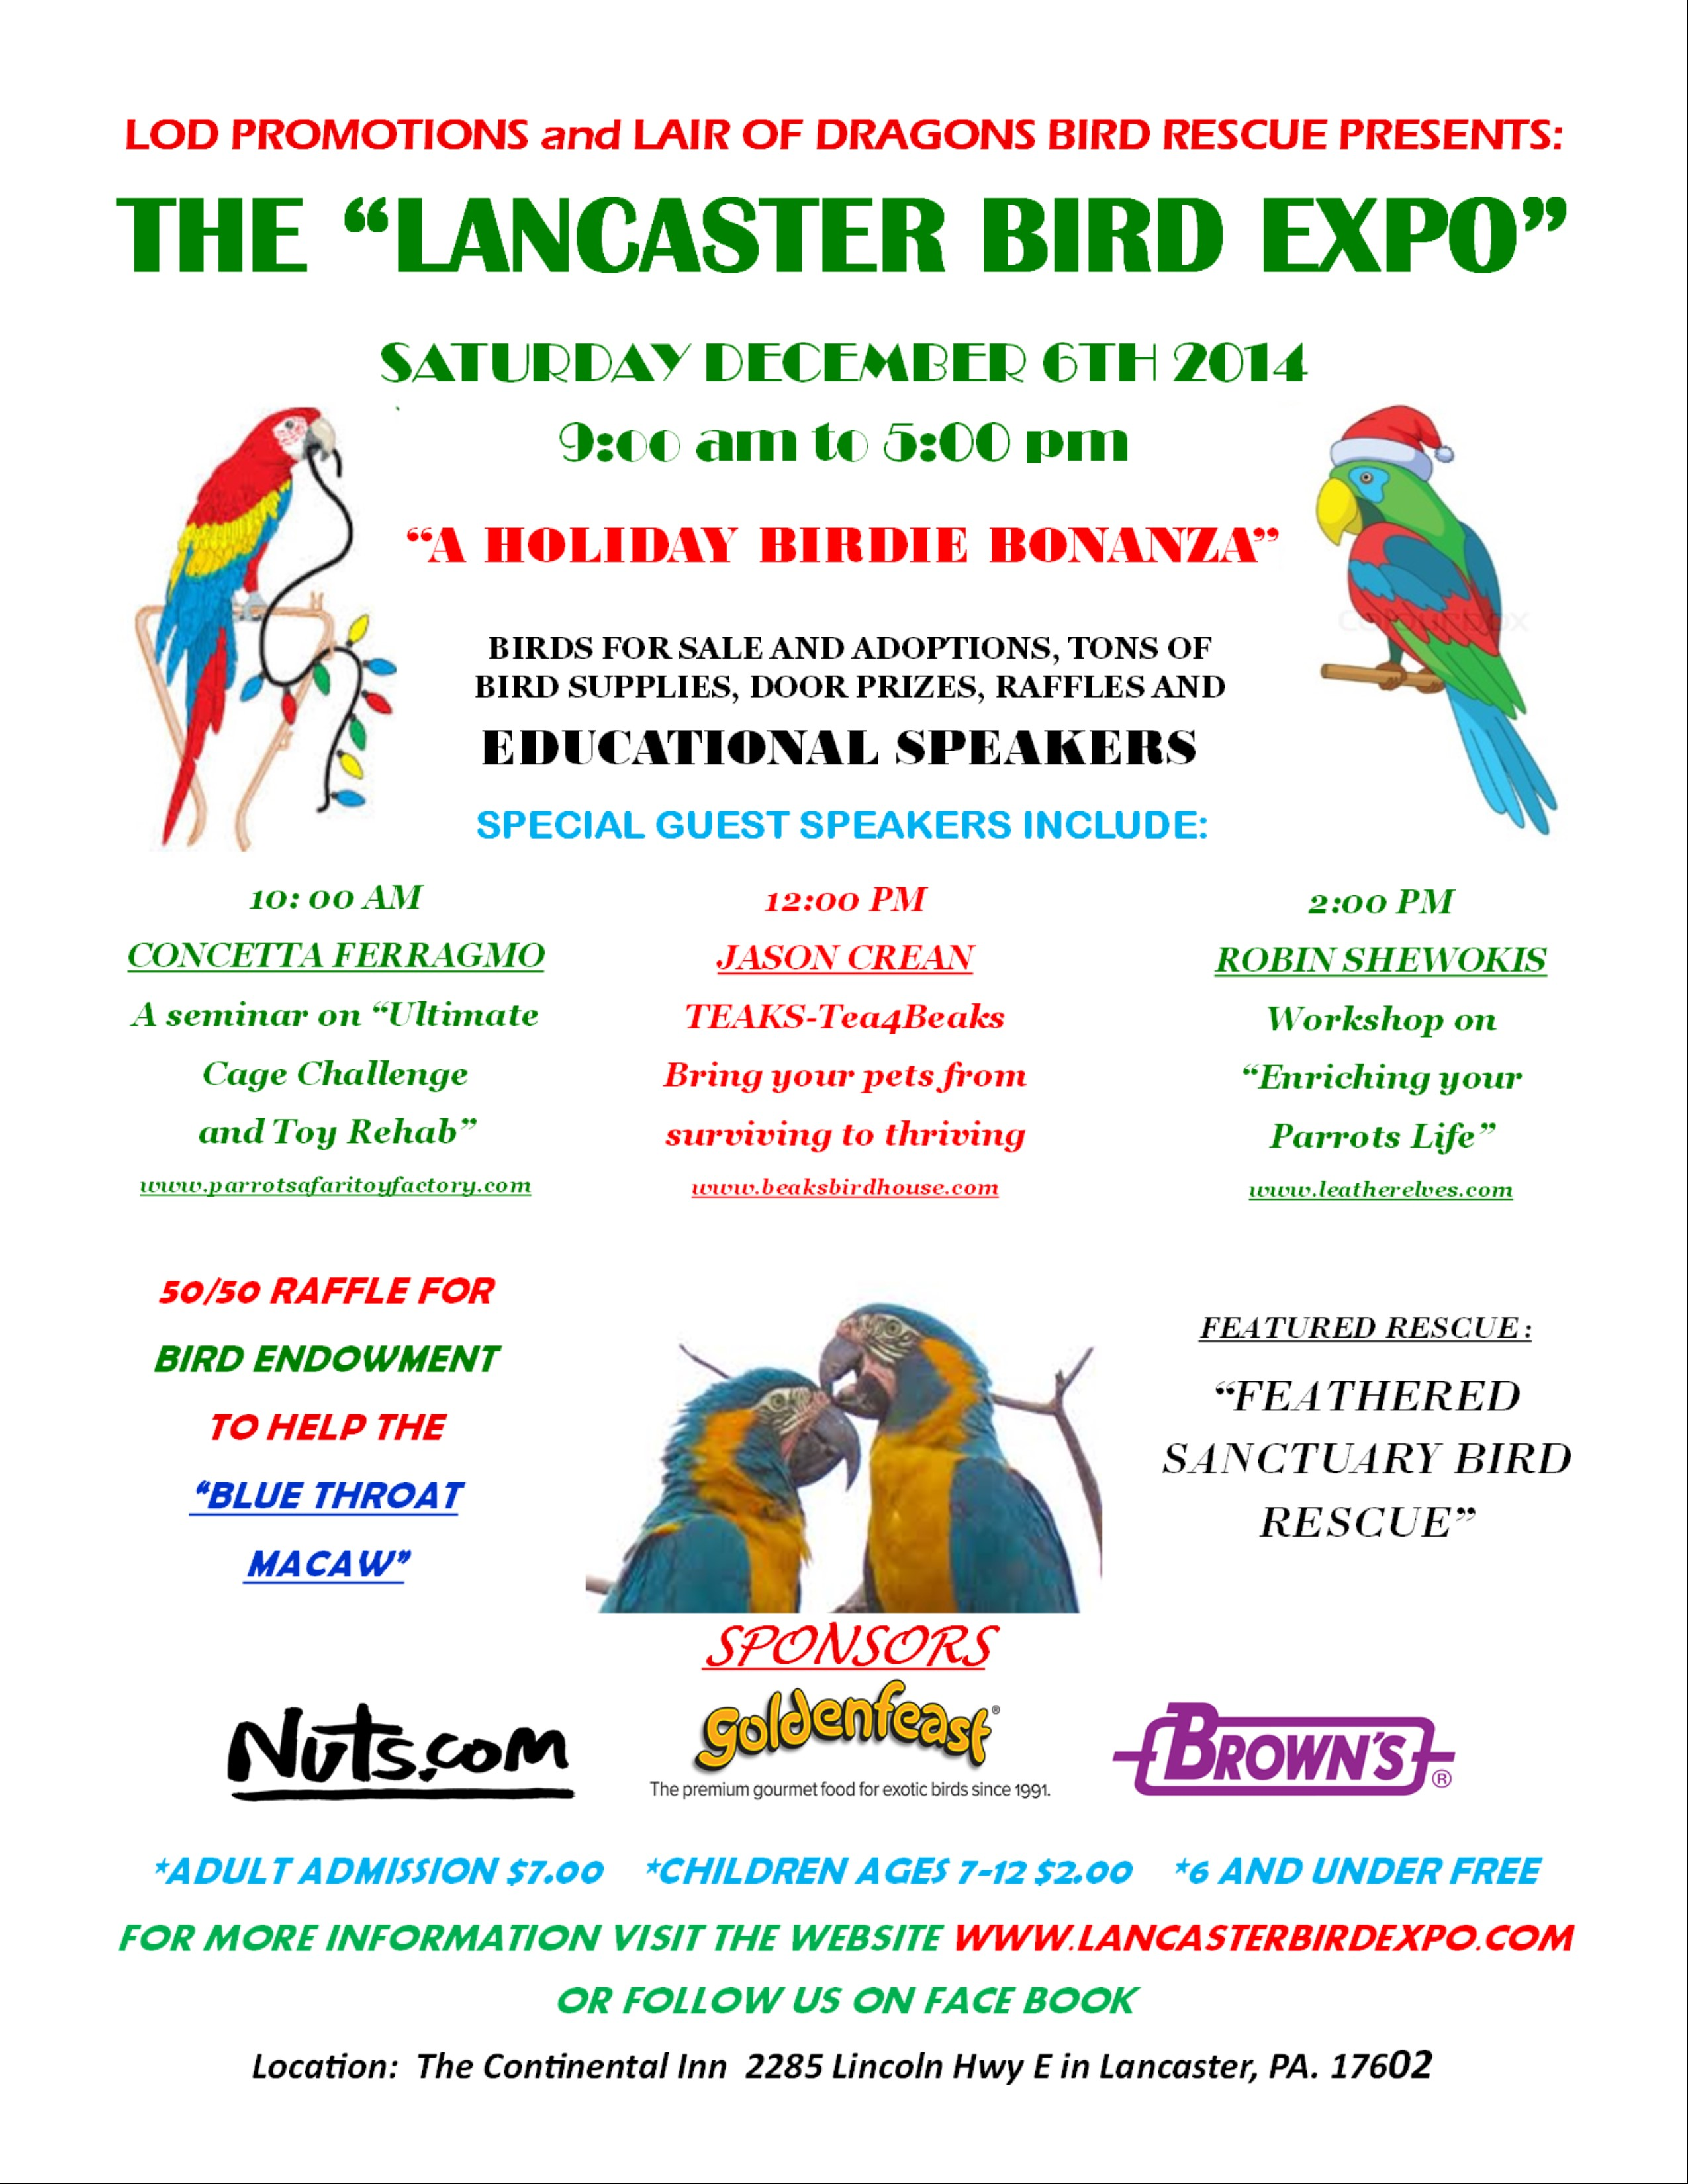 Lancaster Bird Expo – December 6, 2014 | The Real Macaw